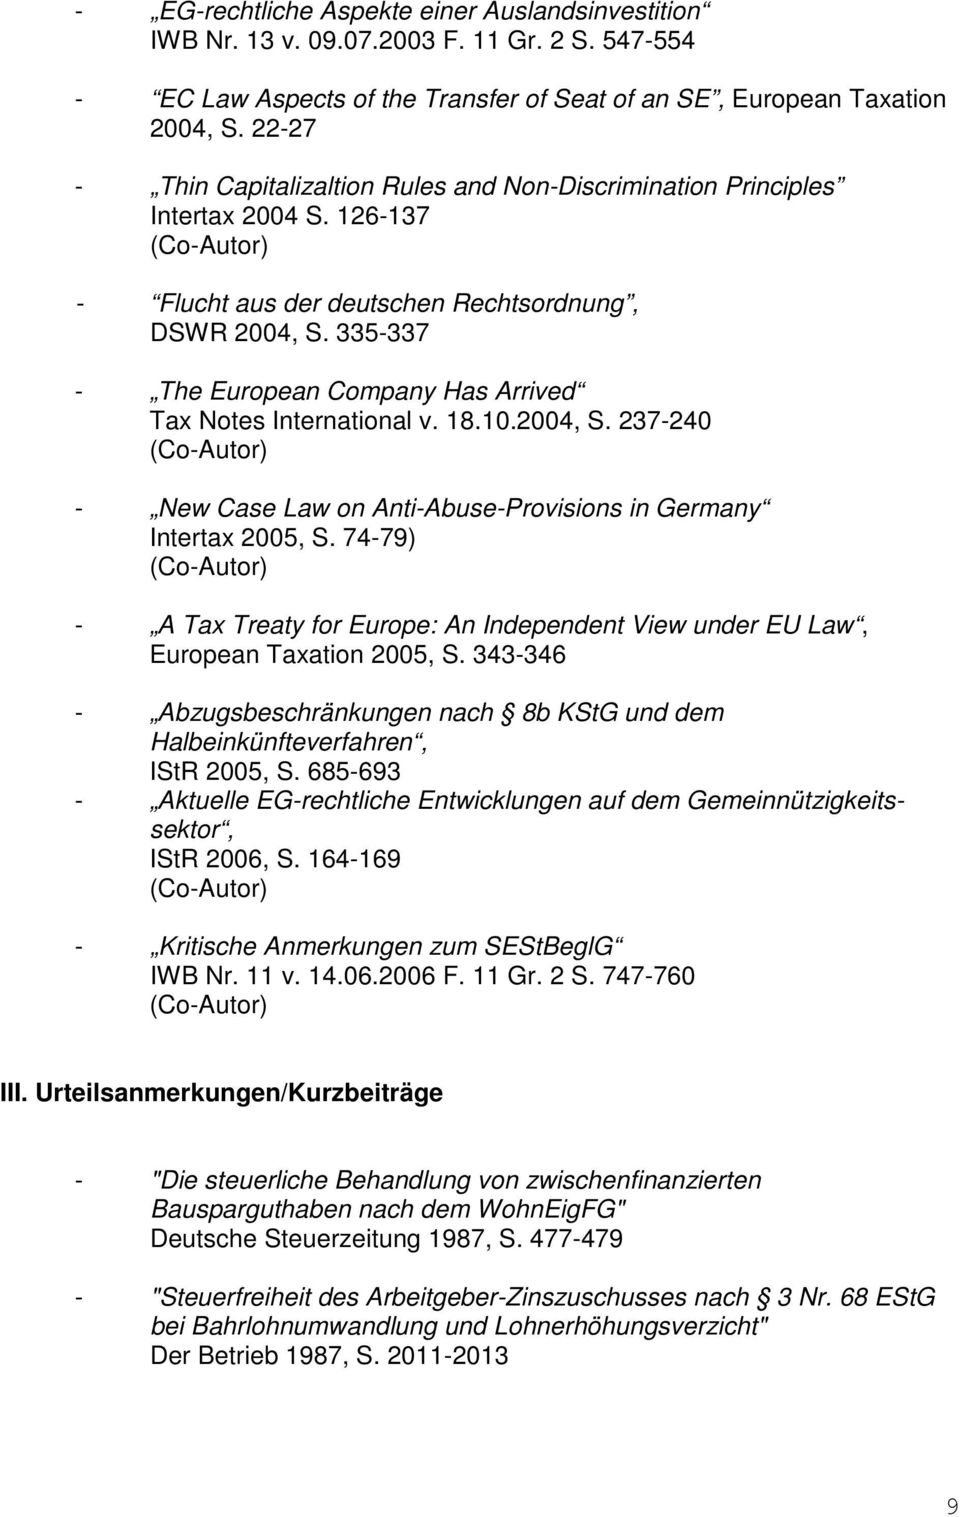 335-337 - The European Company Has Arrived Tax Notes International v. 18.10.2004, S. 237-240 - New Case Law on Anti-Abuse-Provisions in Germany Intertax 2005, S.